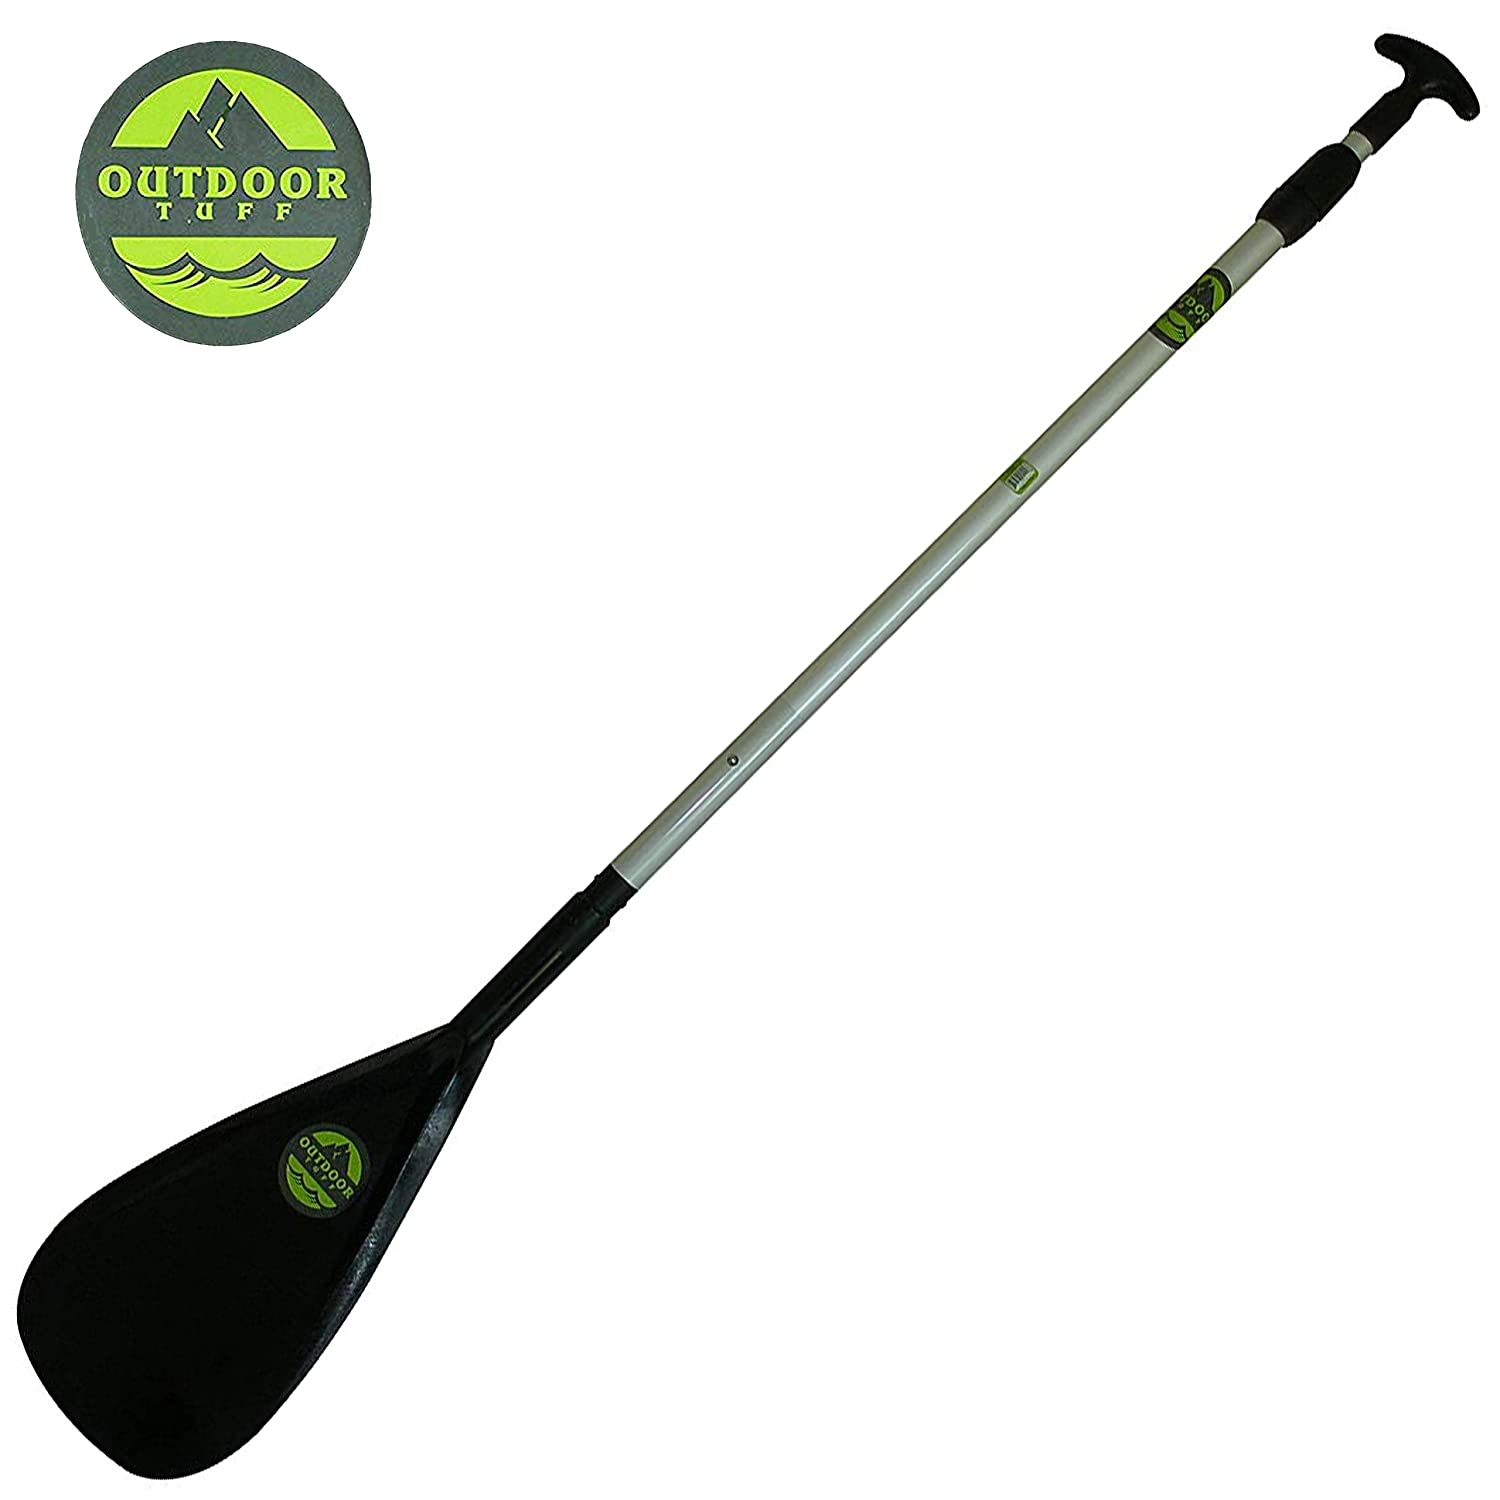 Outdoor Tuff 2-Piece Adjustable Paddle Heavy Duty Alloy Paddle That Floats All Ages and Sizes SUP Stand Up Paddleboard, Canoe, Kayak, Raft